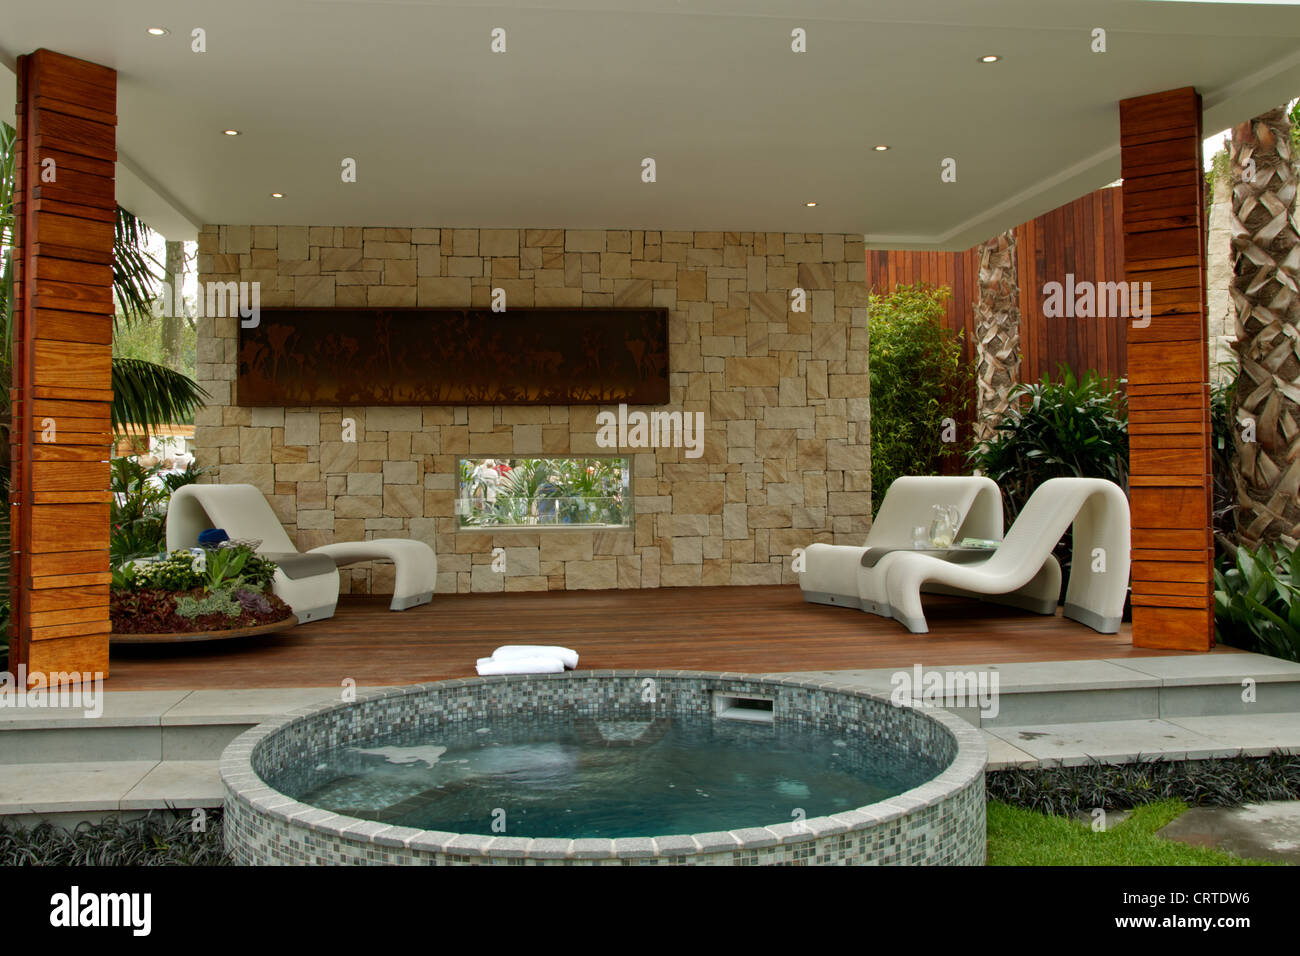 garden jacuzzi photos garden jacuzzi images alamy. Black Bedroom Furniture Sets. Home Design Ideas